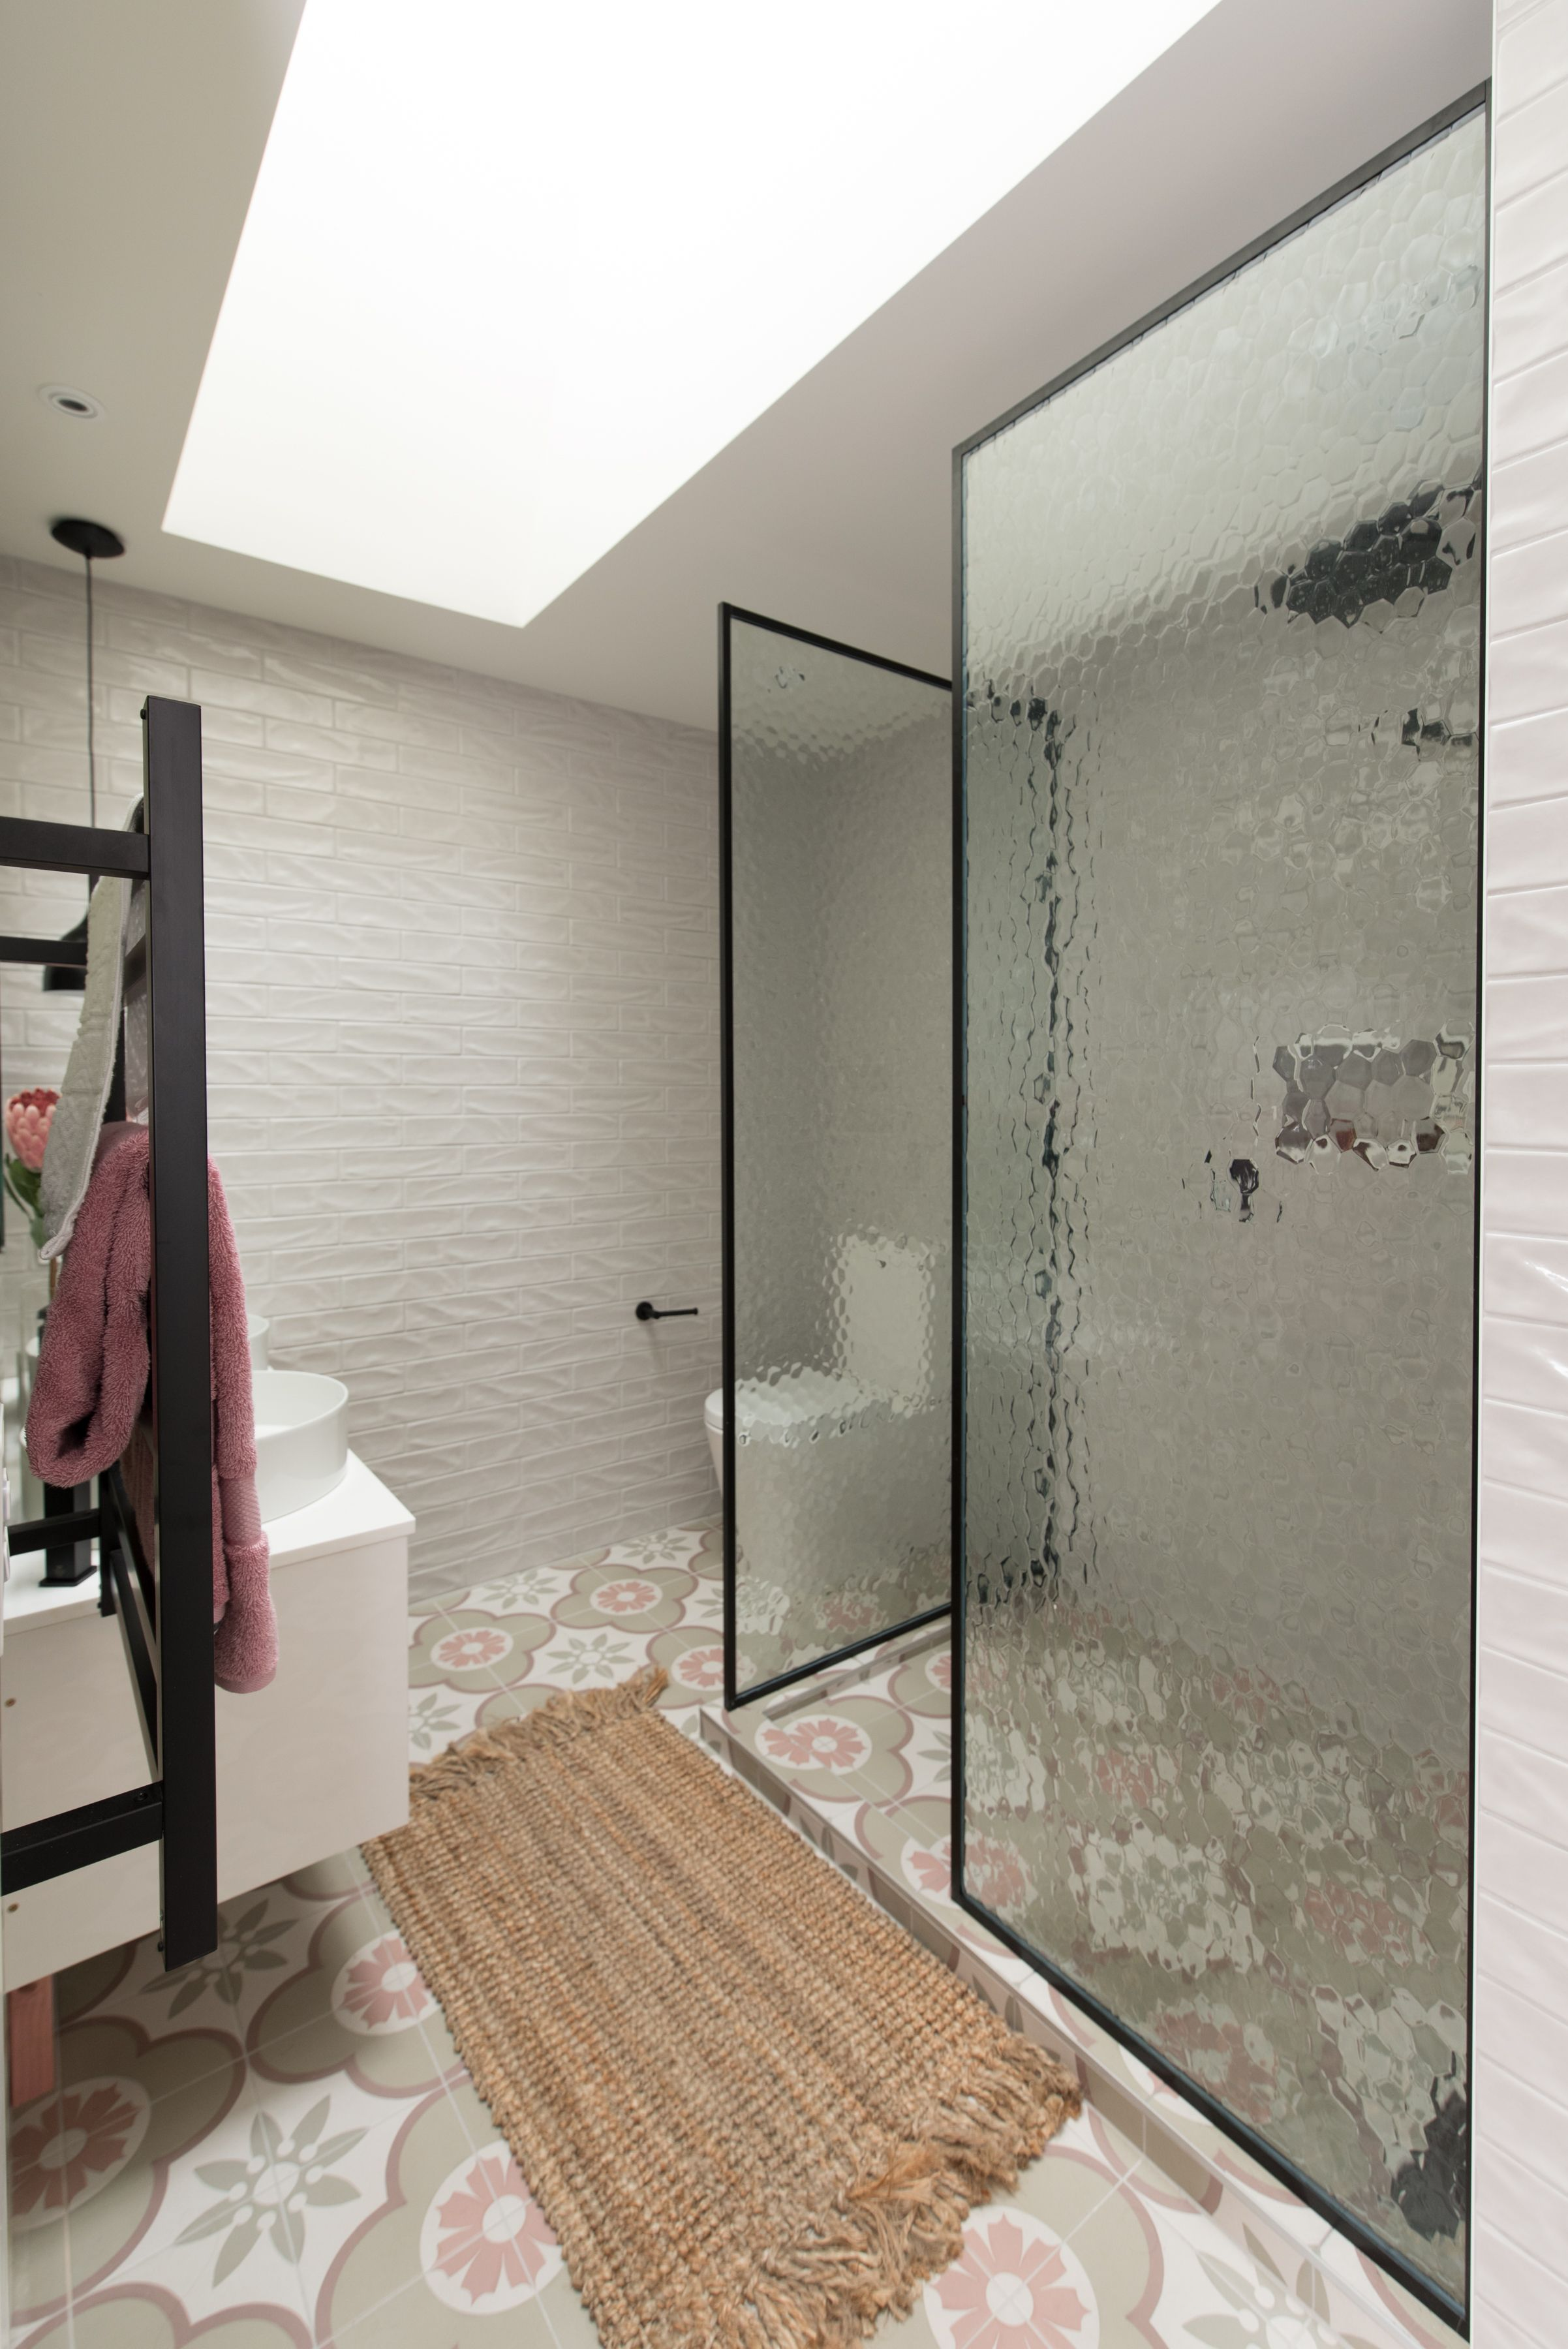 Adding A New Touch To Walk In Showers This One Utilises Patterned